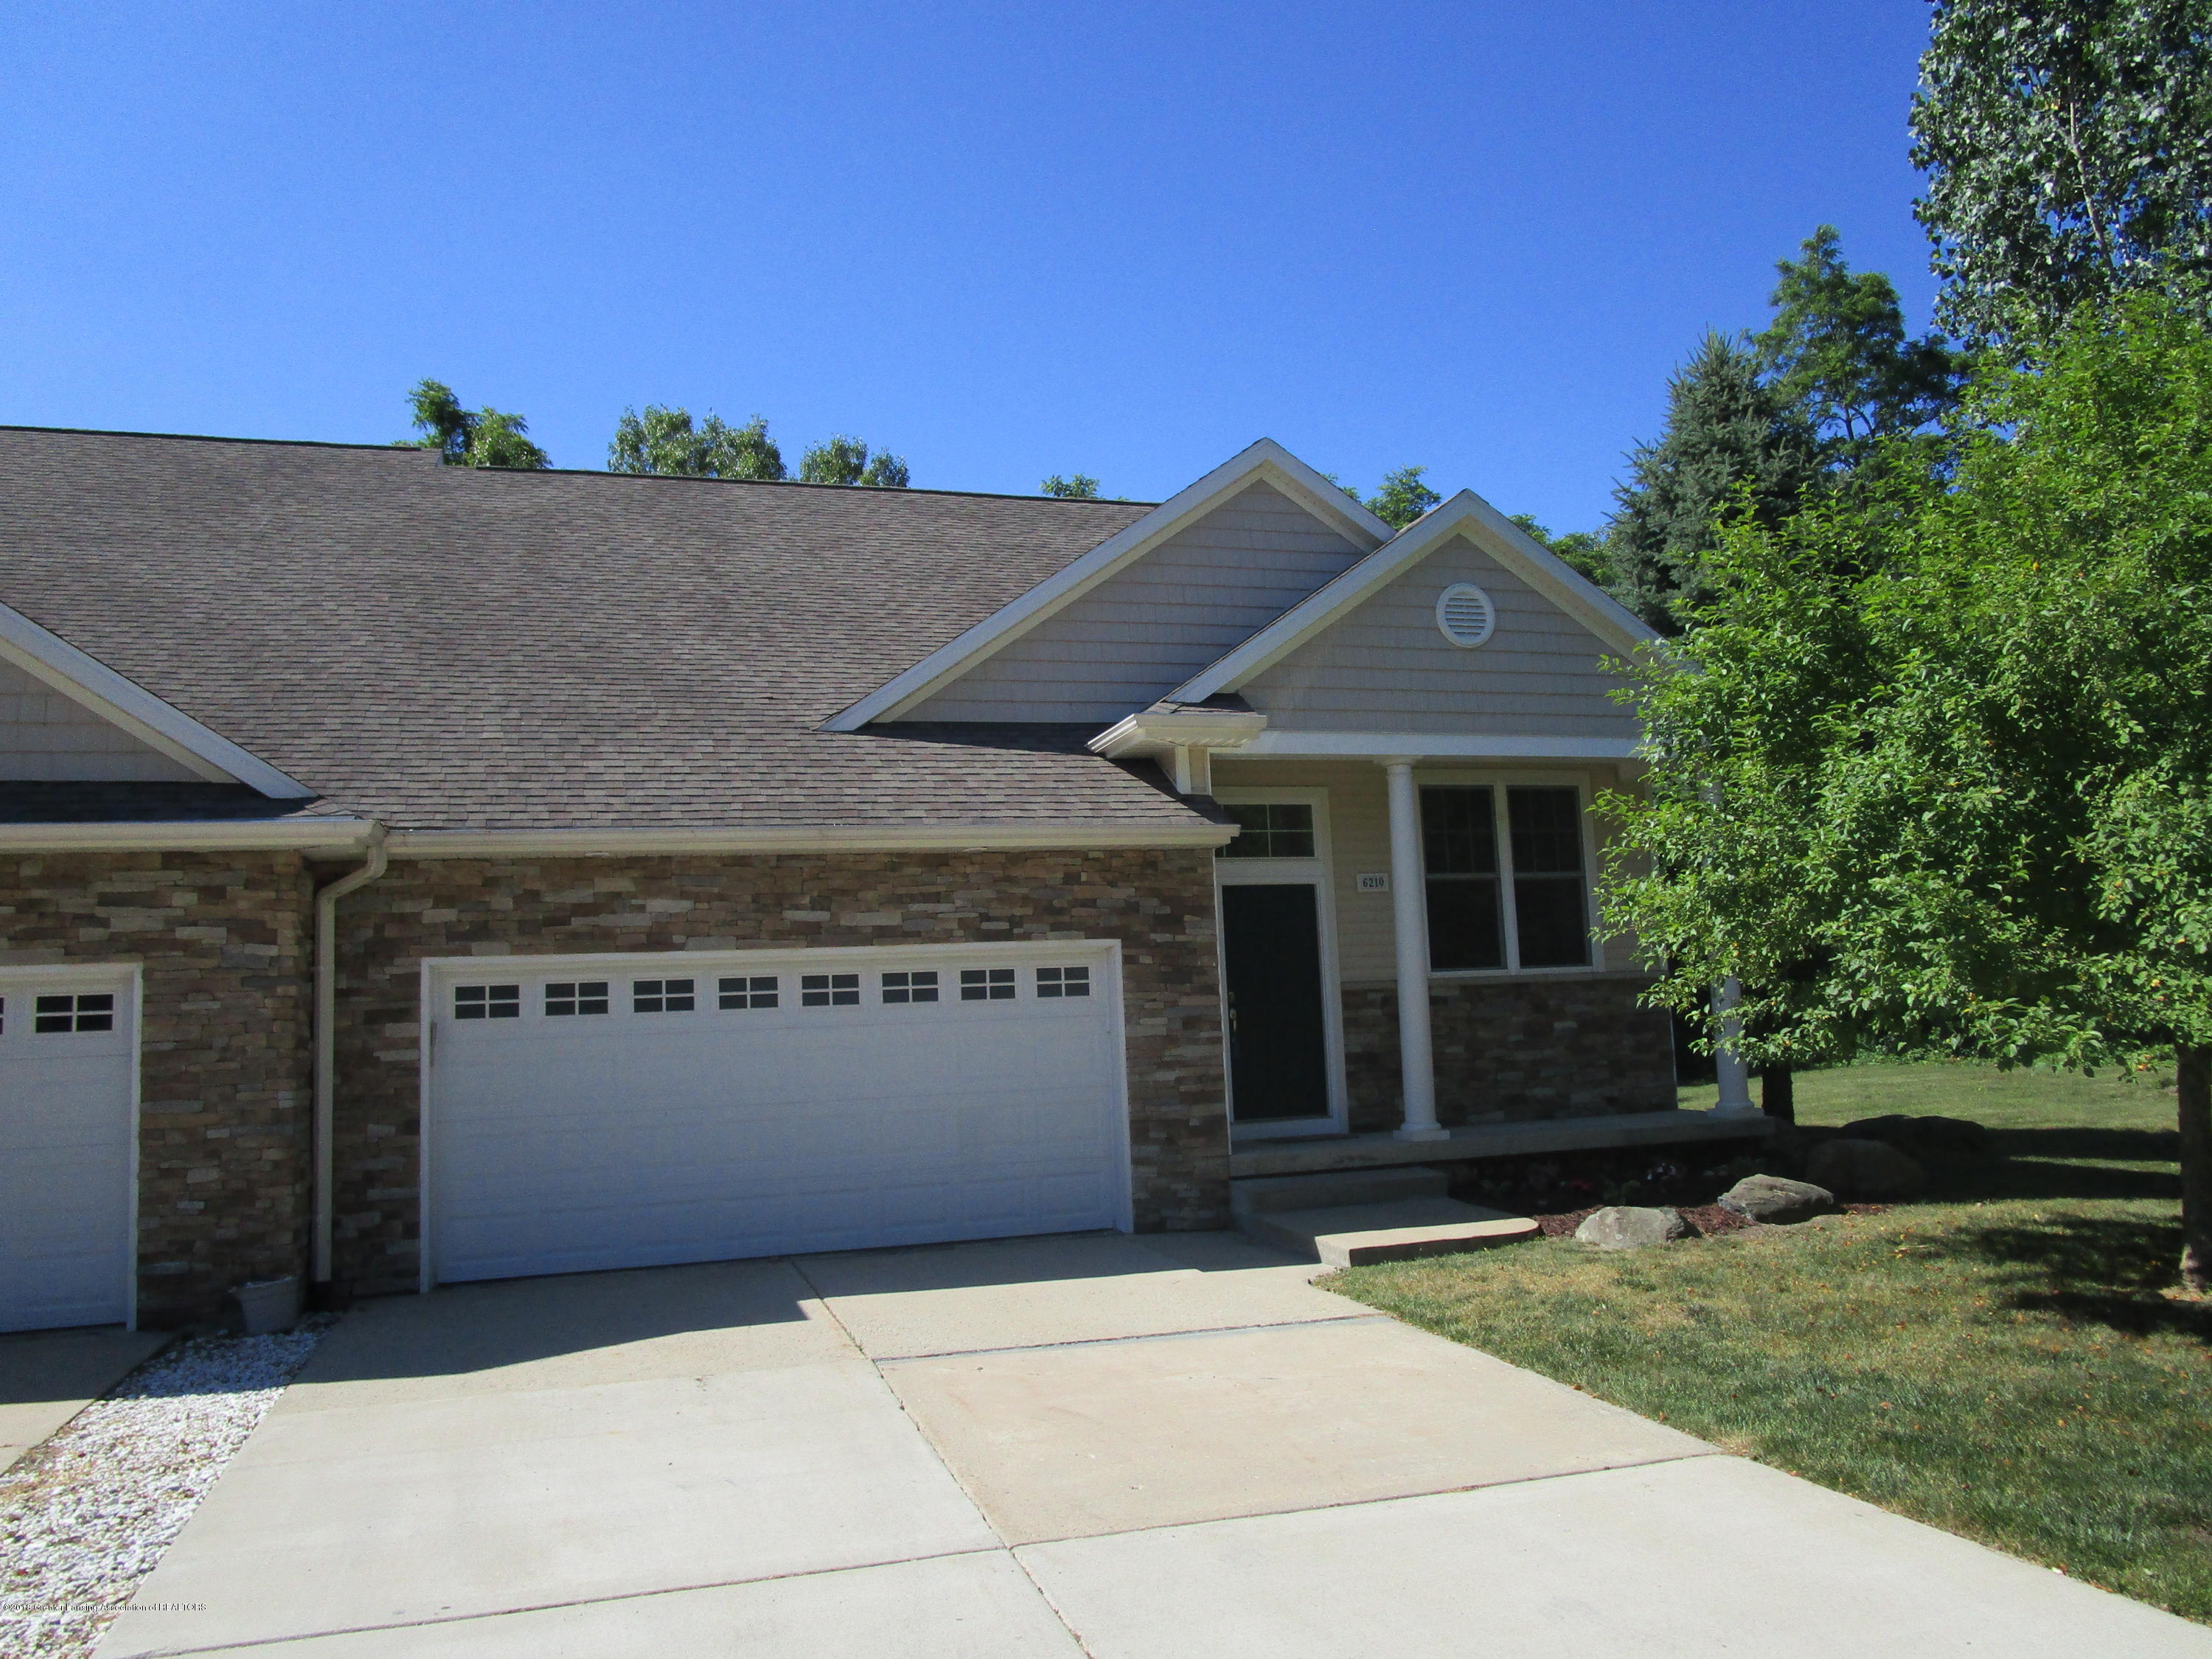 6210 Hilltop Ct 8 - Front of House - 1